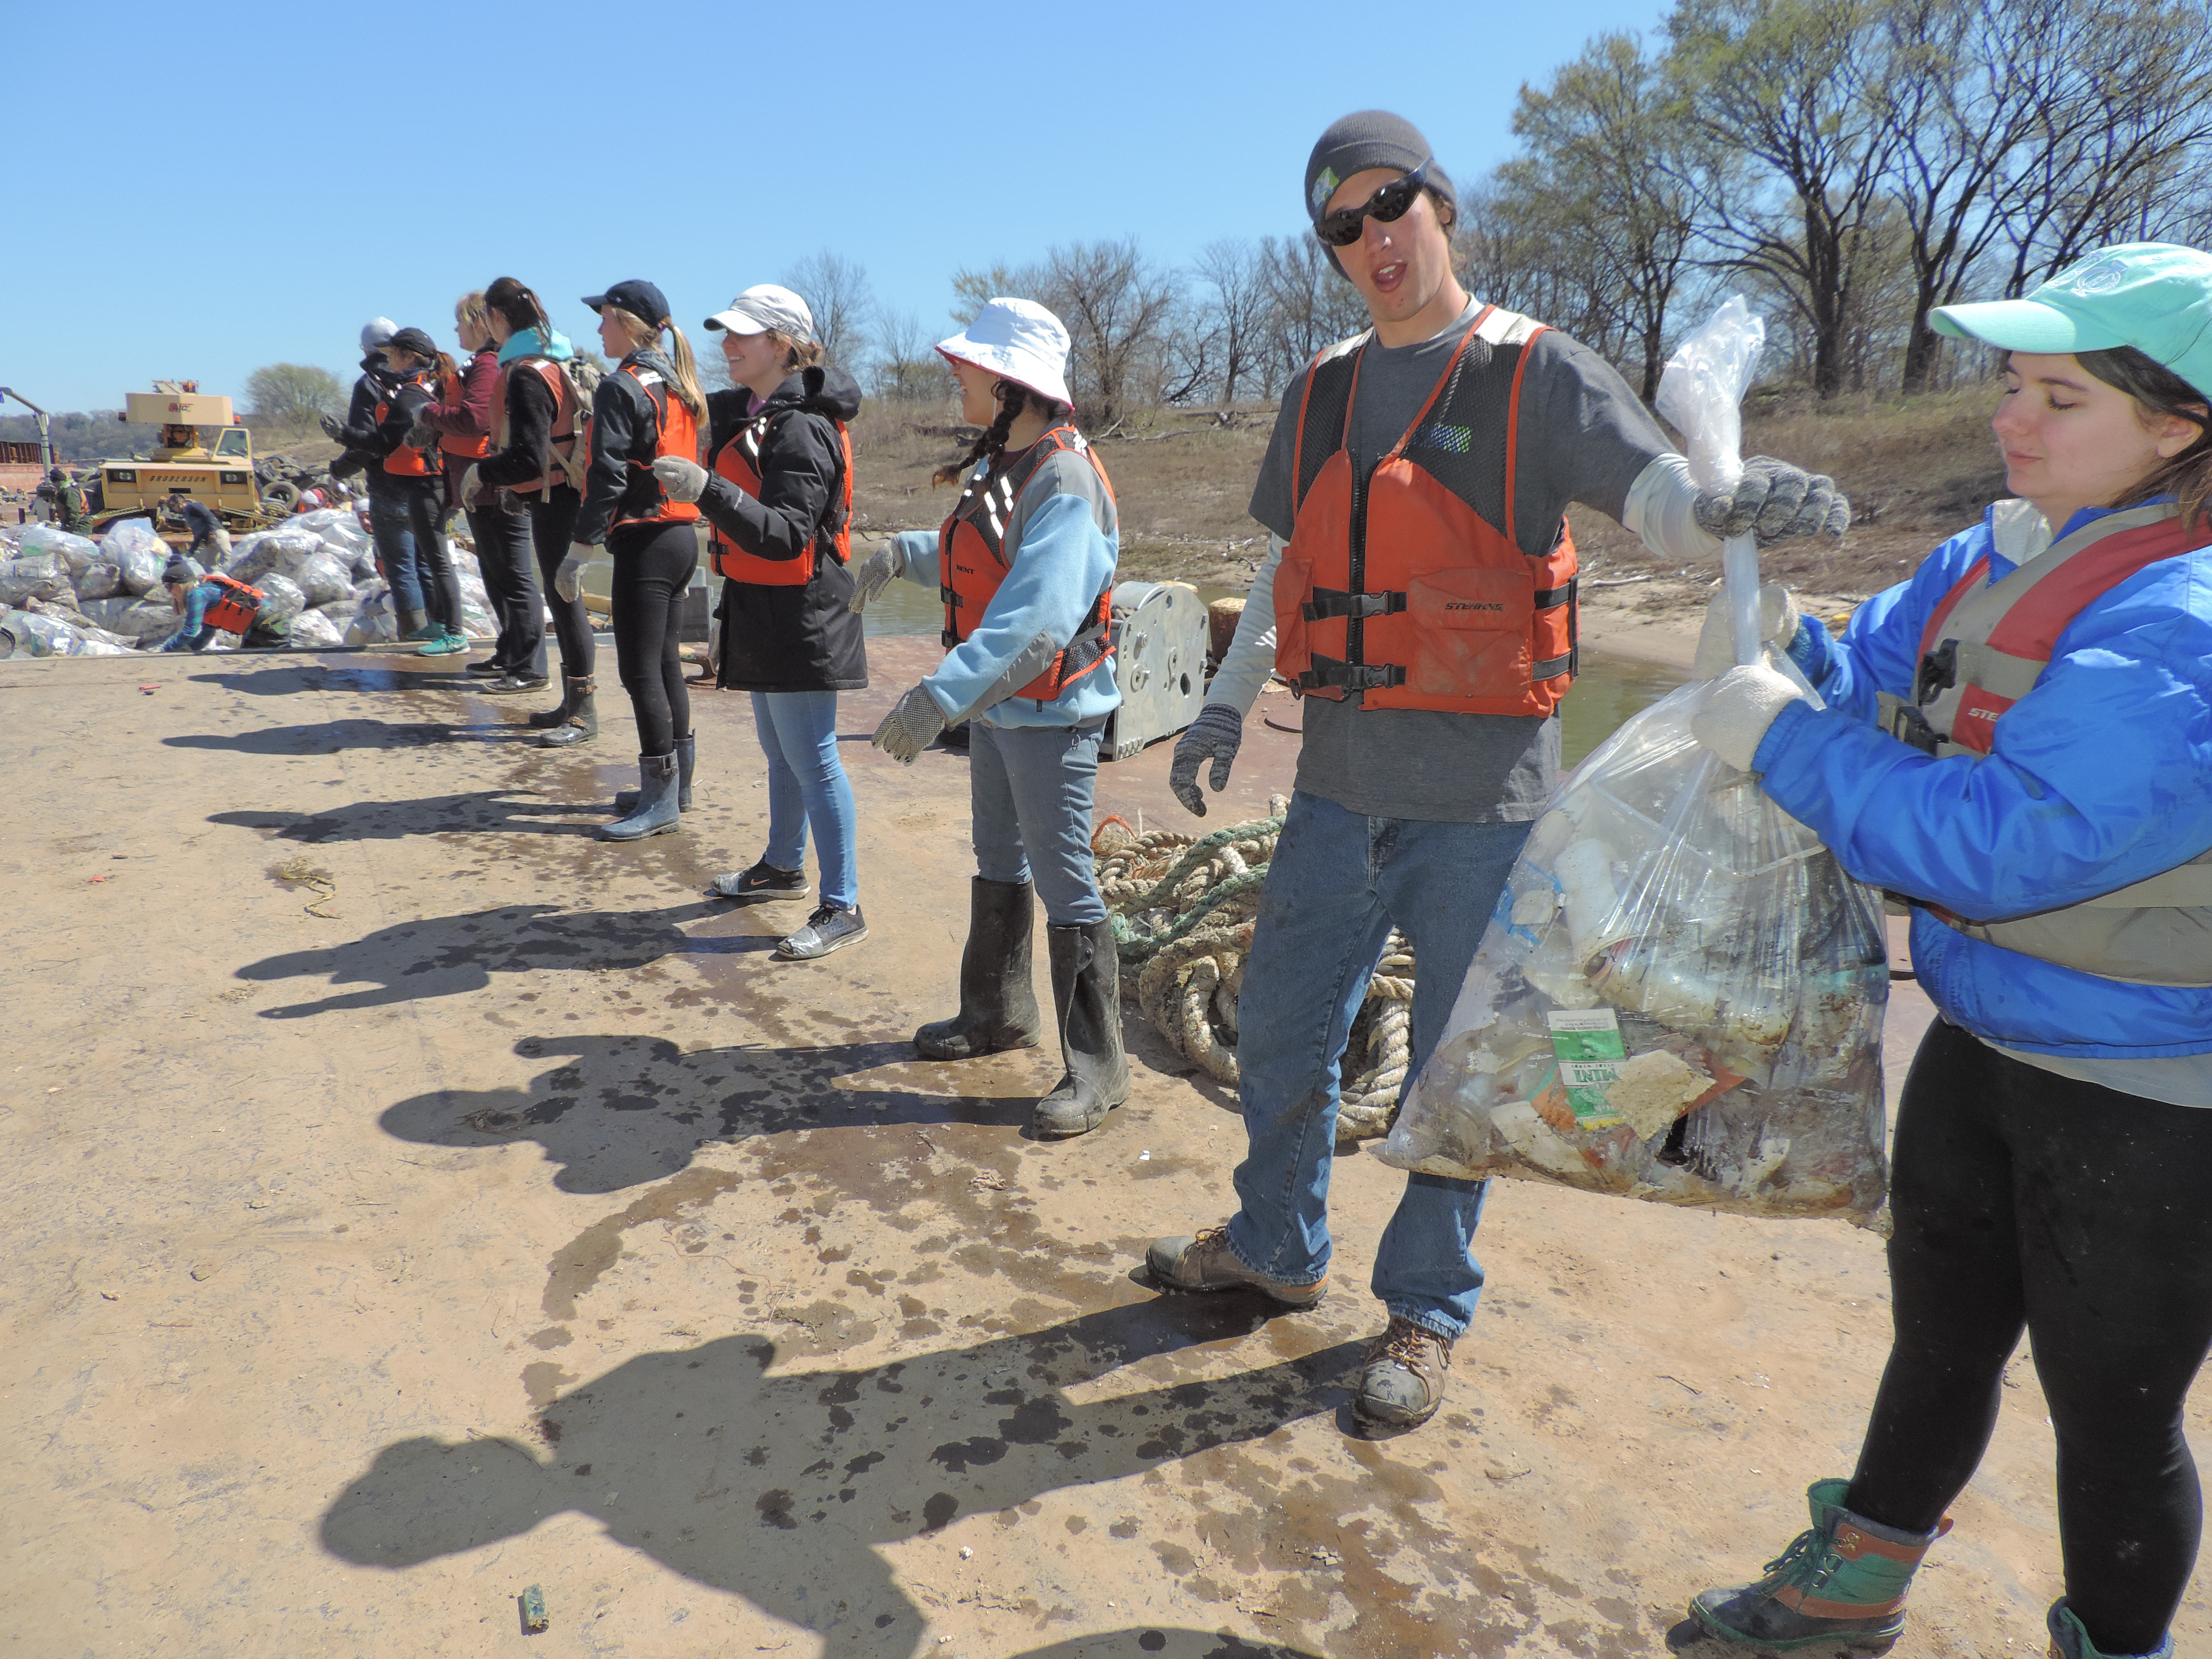 students in a line with bags of trash on Alternative Break